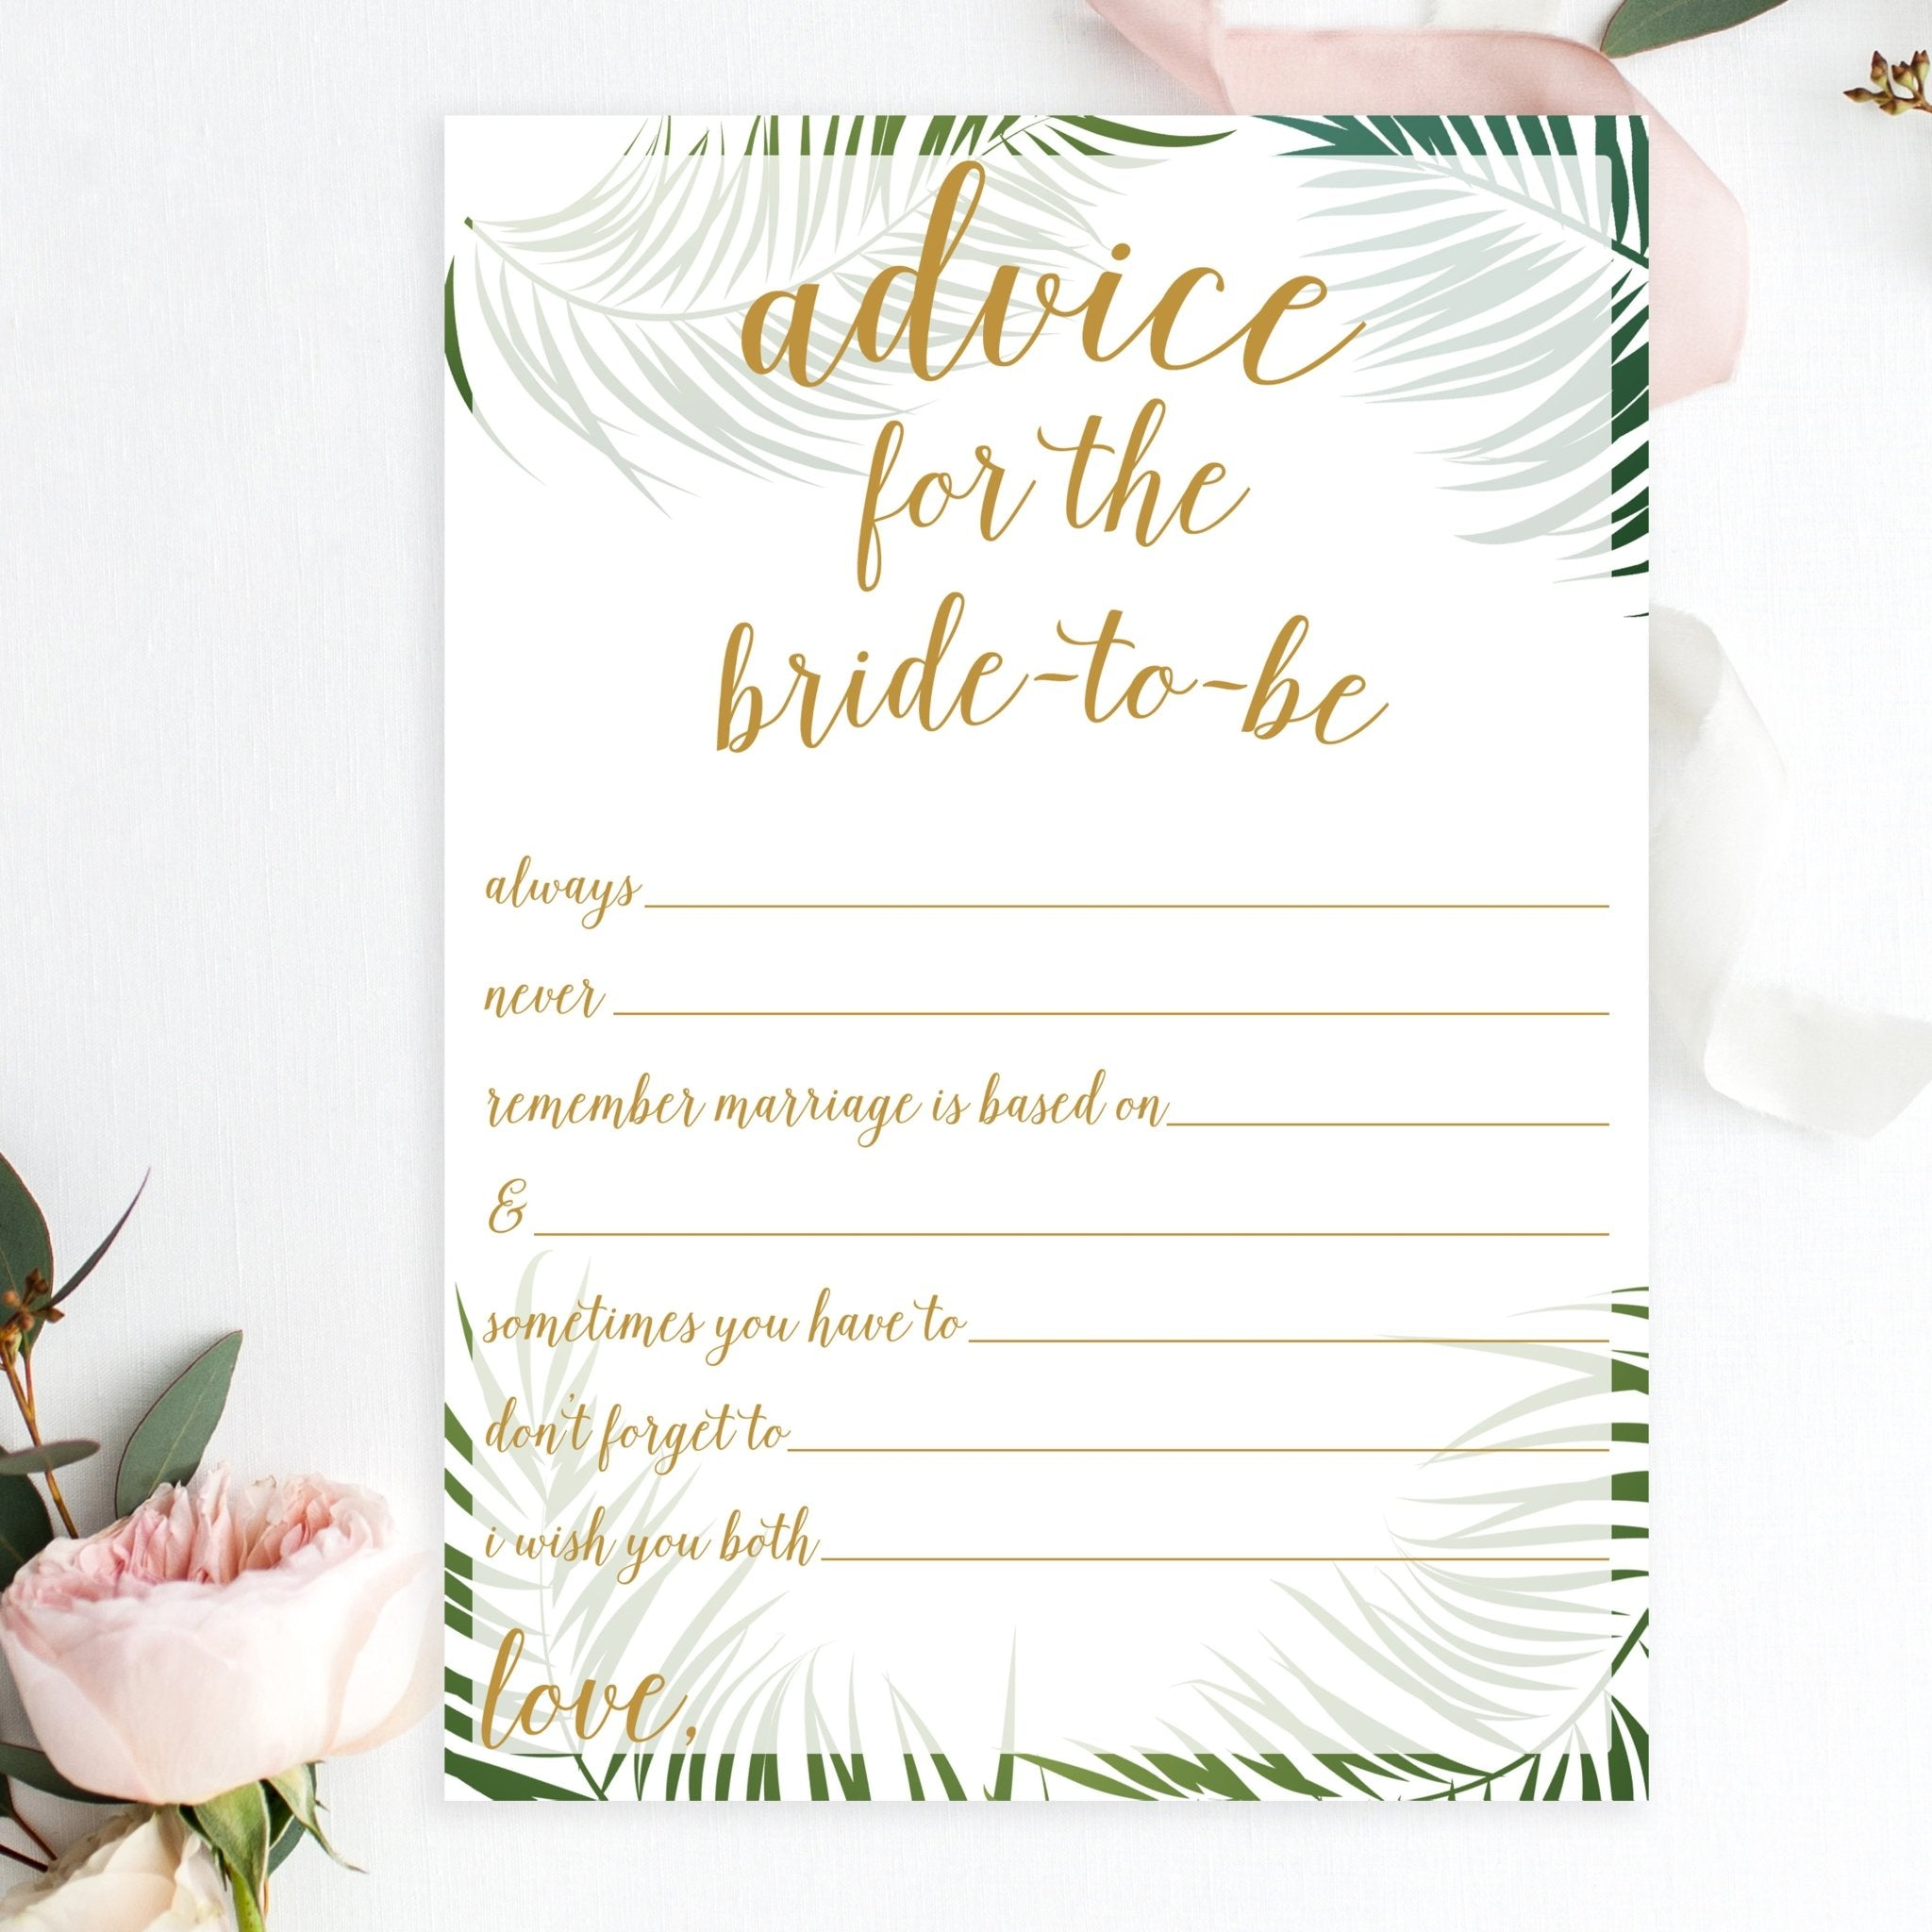 Advice For The Bride To Be Statements Tropical Printable Pretty Collected